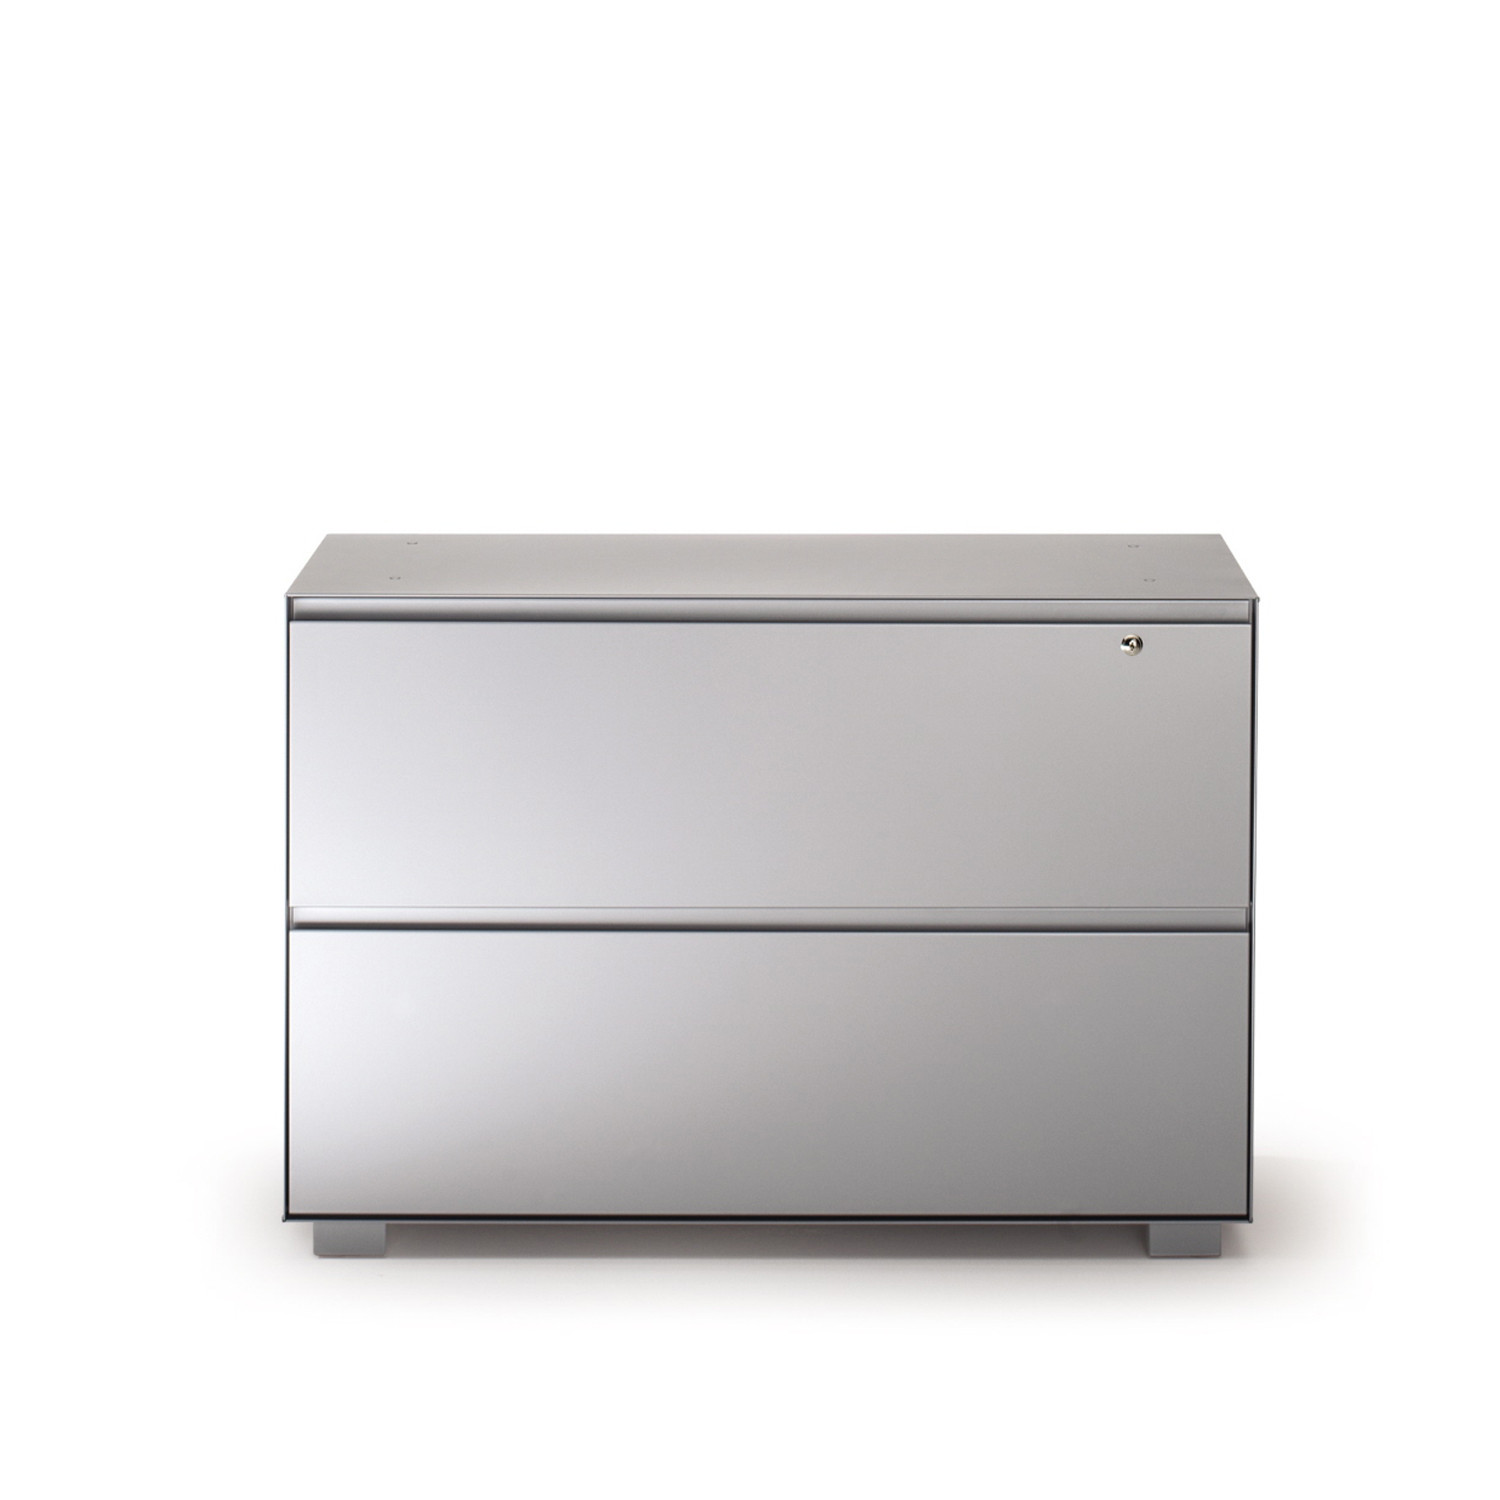 Primo Drawer Cabinets are available in two heights